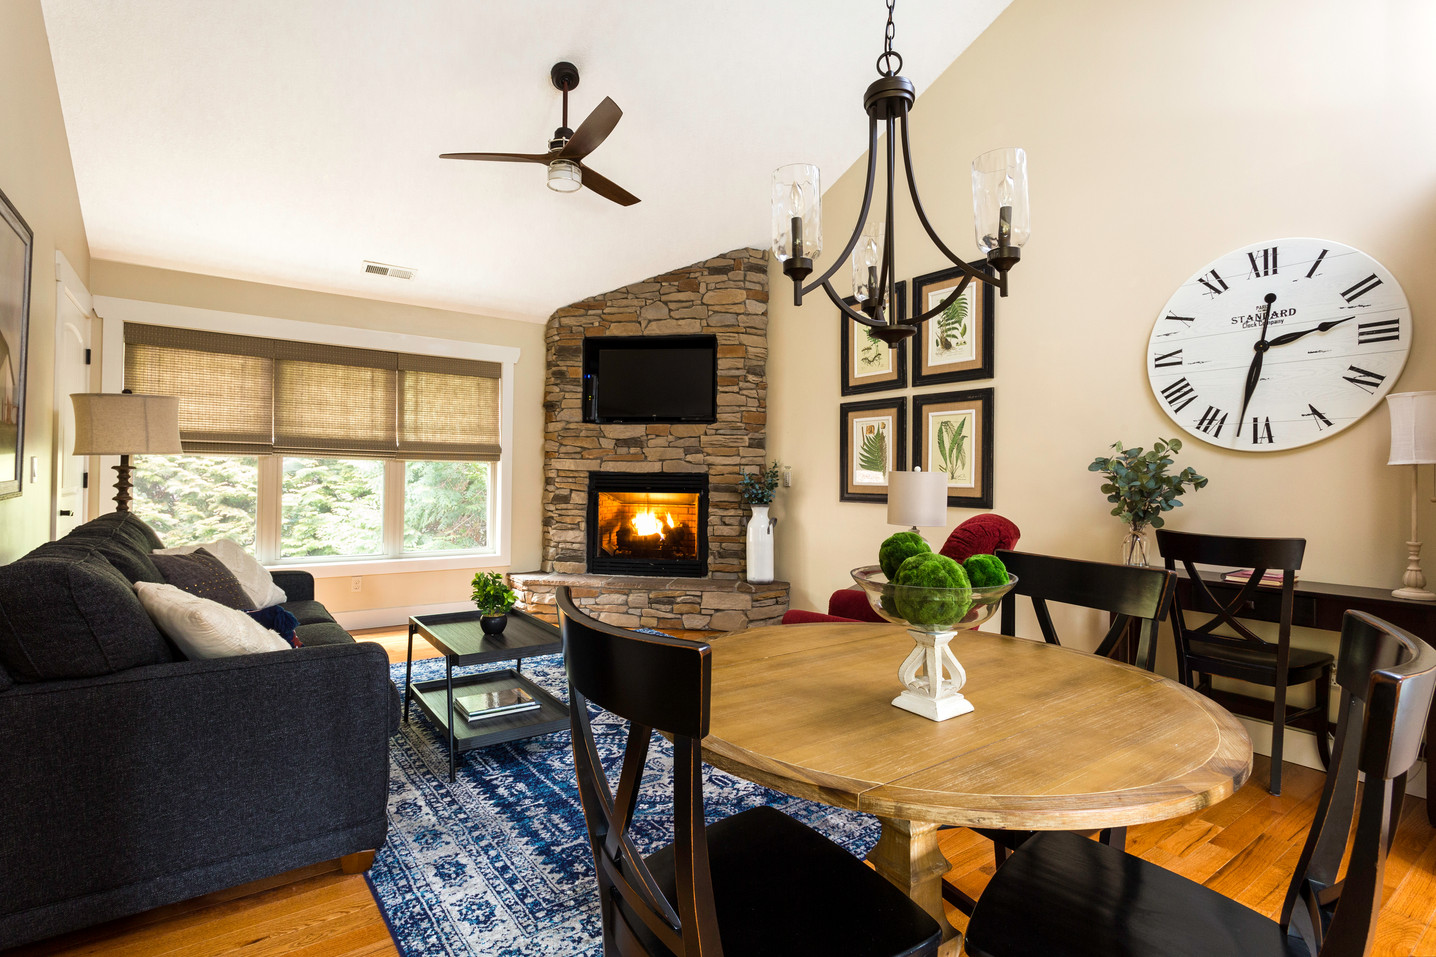 Large TV and fireplace in this cabin rental in Asheville